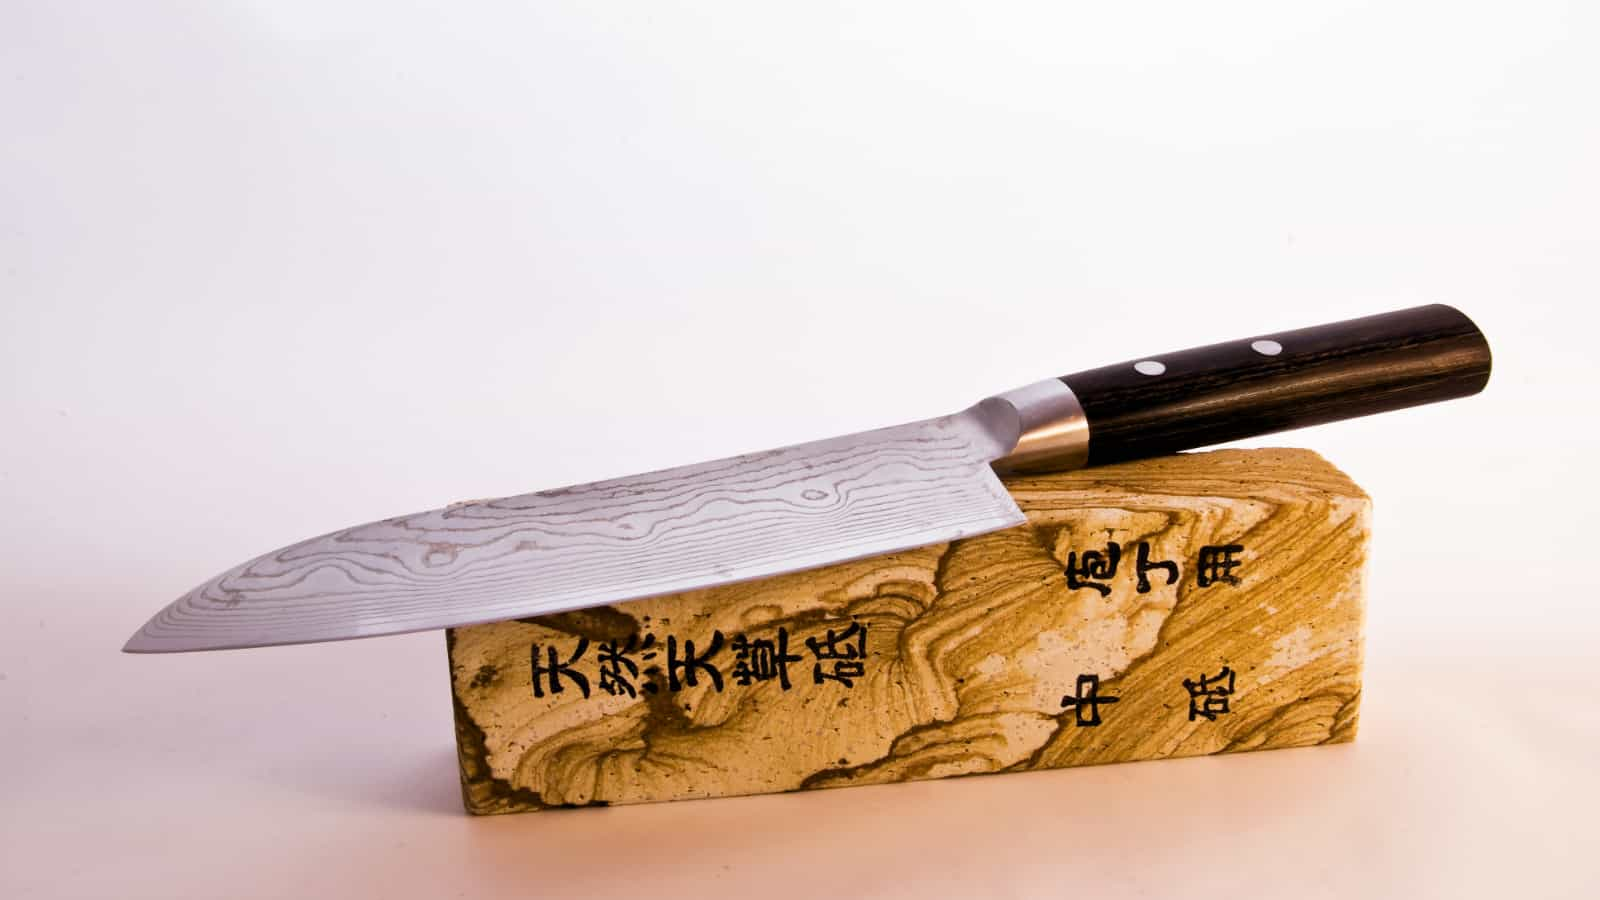 Detail of a Japanese kitchen knife made out of Damascus steel